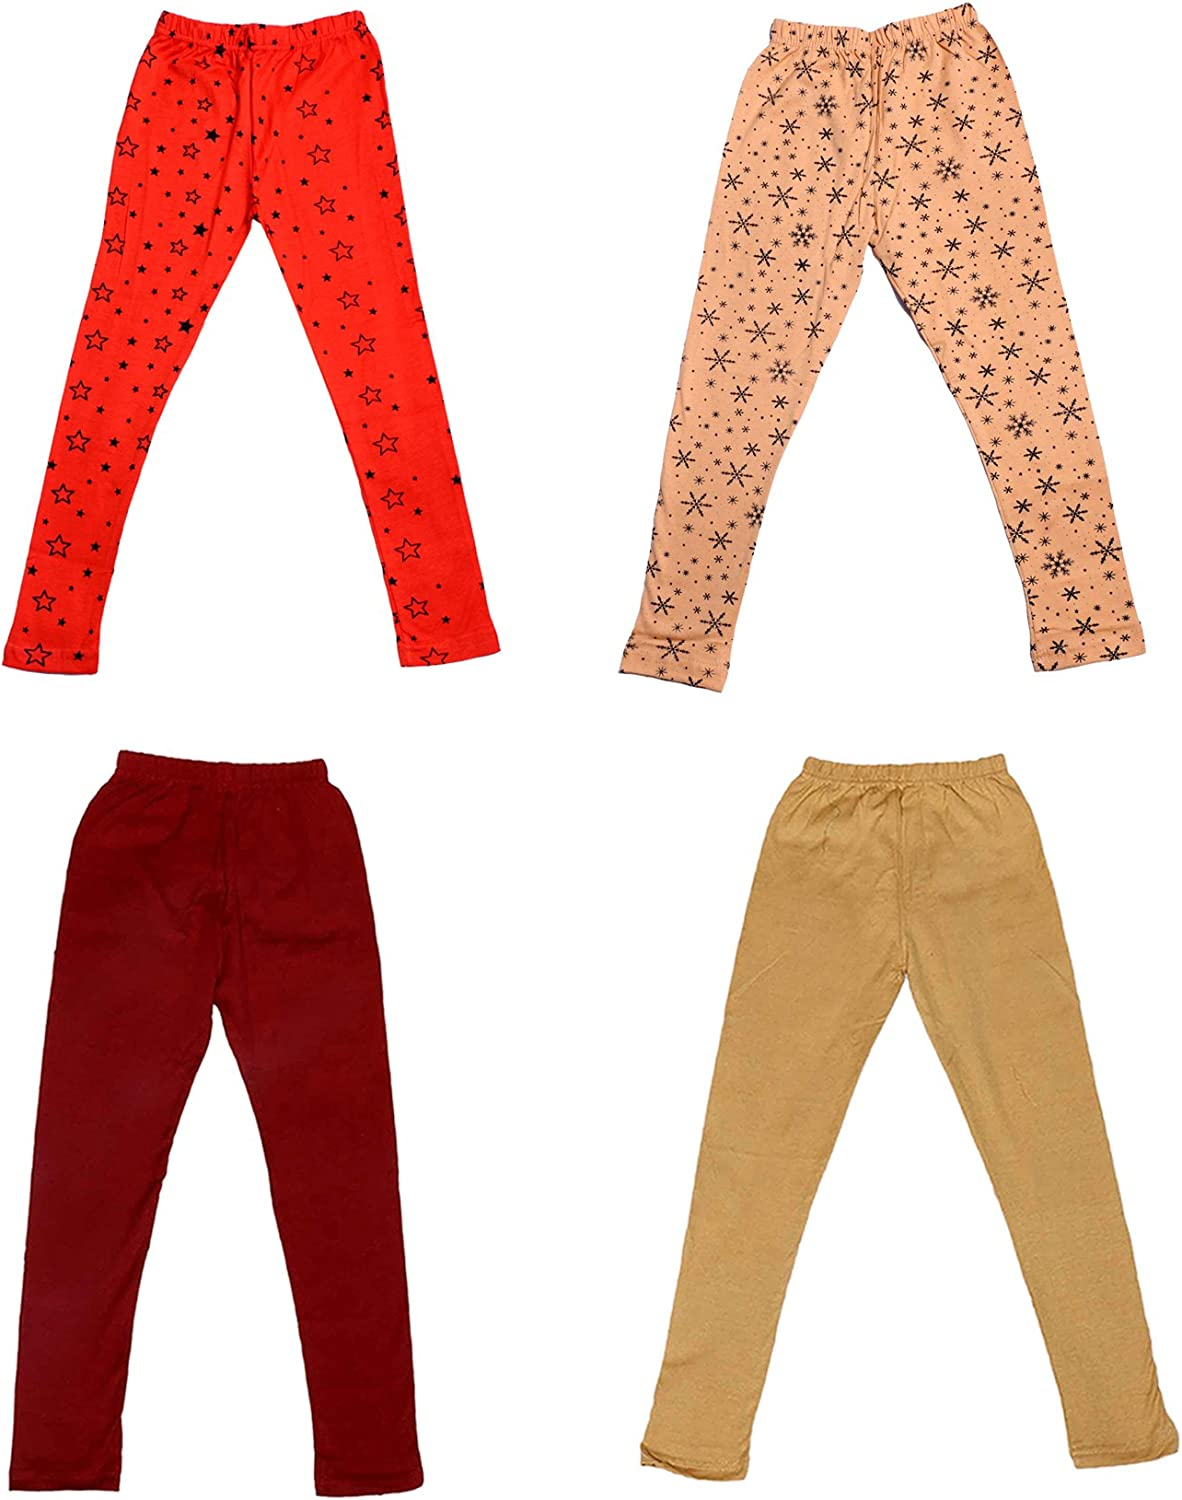 /_Multicolor/_Size-7-8 Years/_71400011619-IW-P4-30 Indistar Girls 2 Cotton Solid Legging Pants and 2 Cotton Printed Legging Pants Pack Of 4